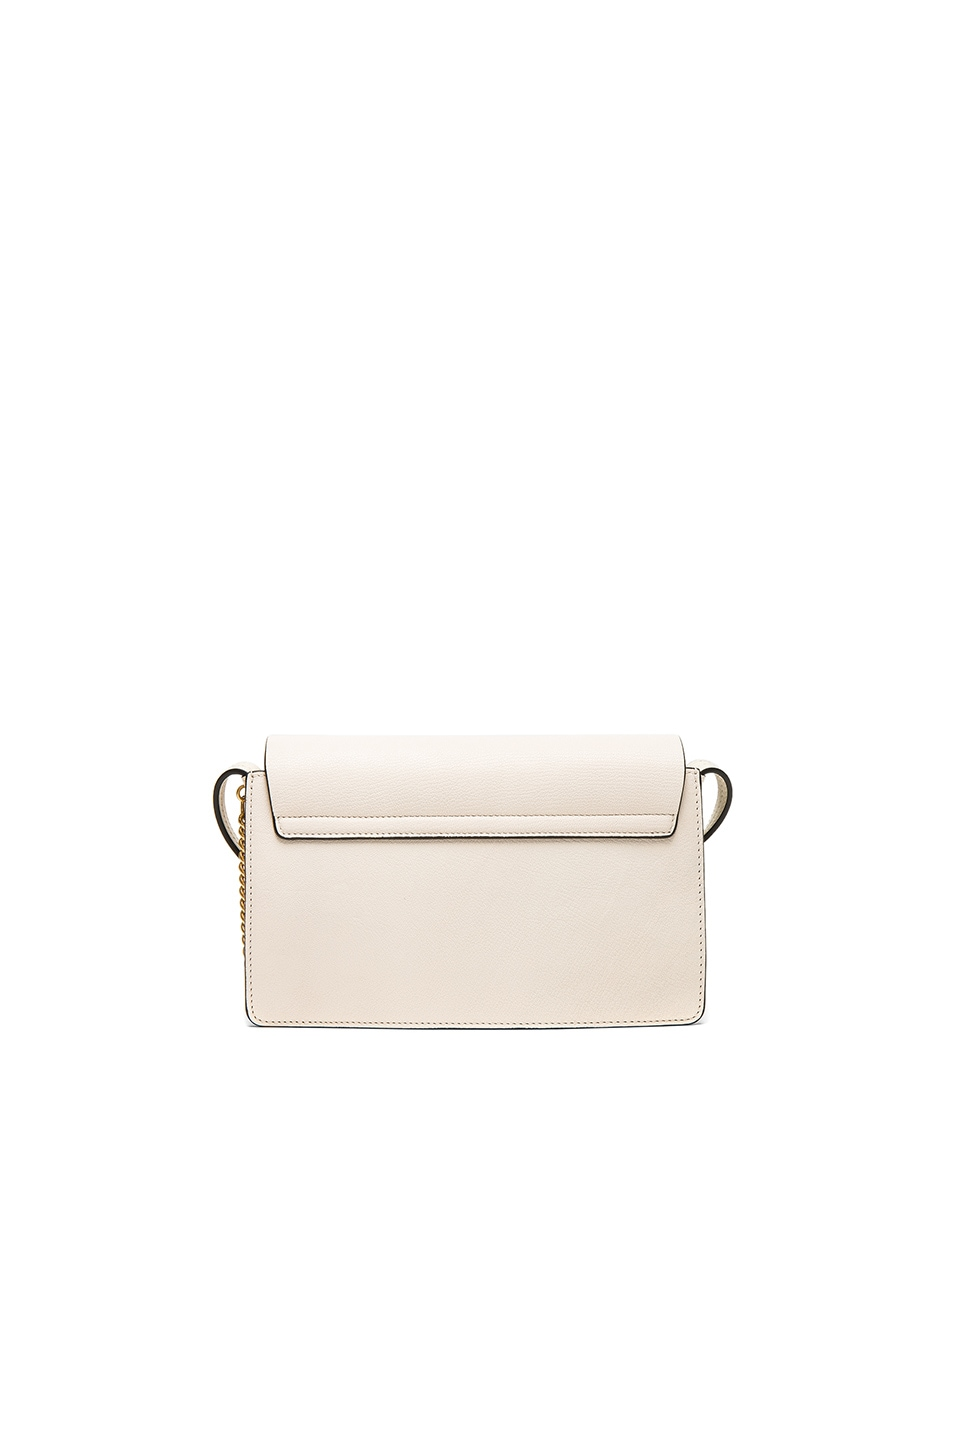 Image 2 of Chloe Small Leather Faye Bag in Off White